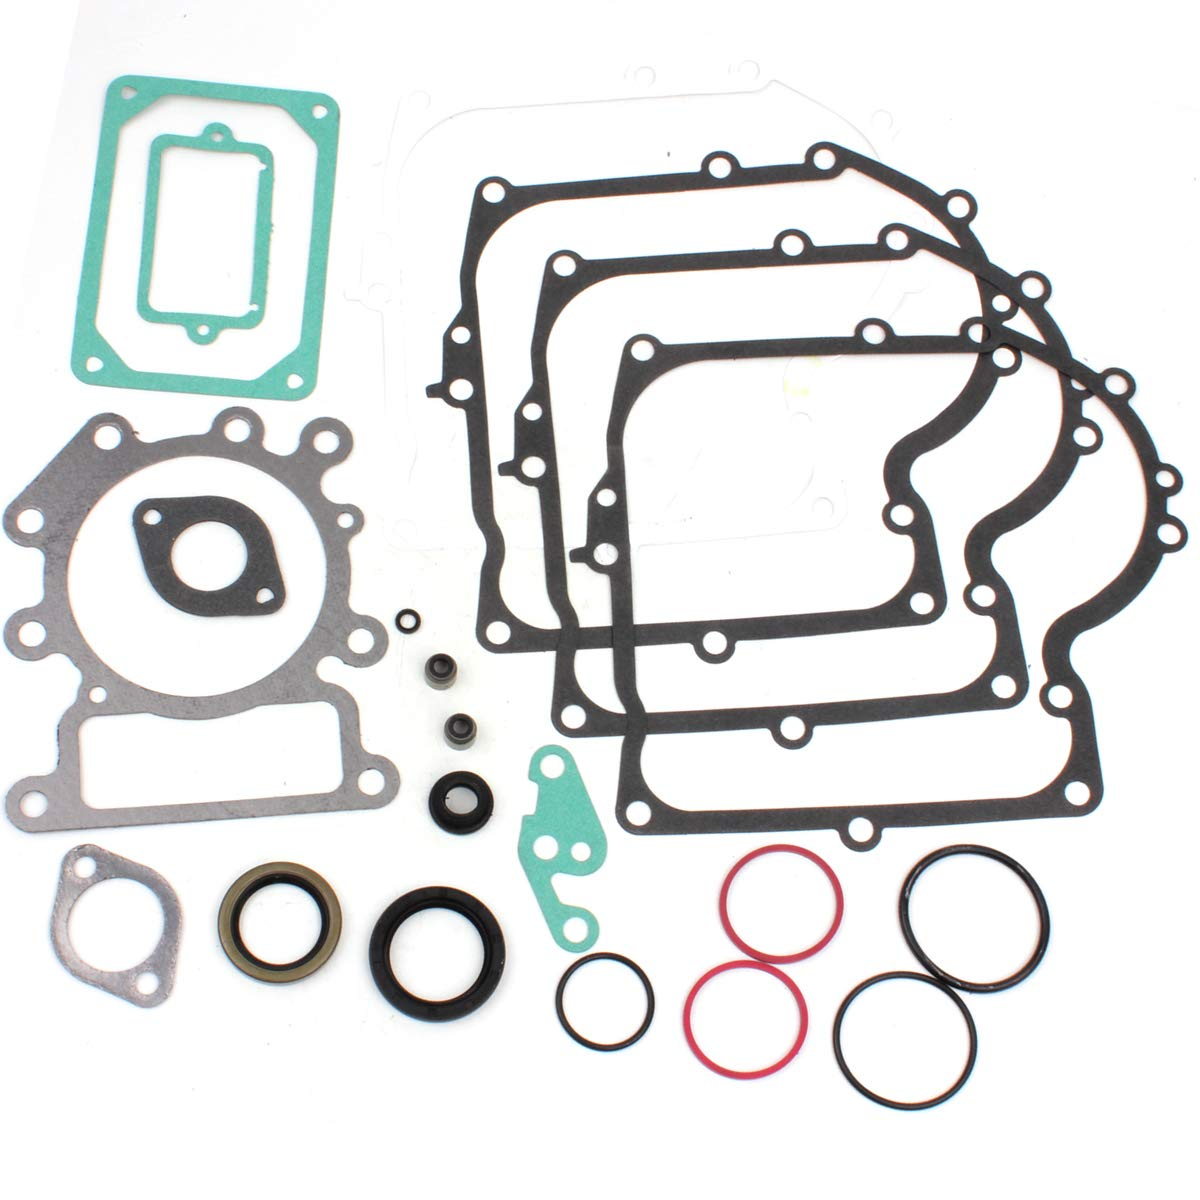 RUHUO 690189 Gasket Complete Rebuild Kit Set for Briggs /& Stratton Engine